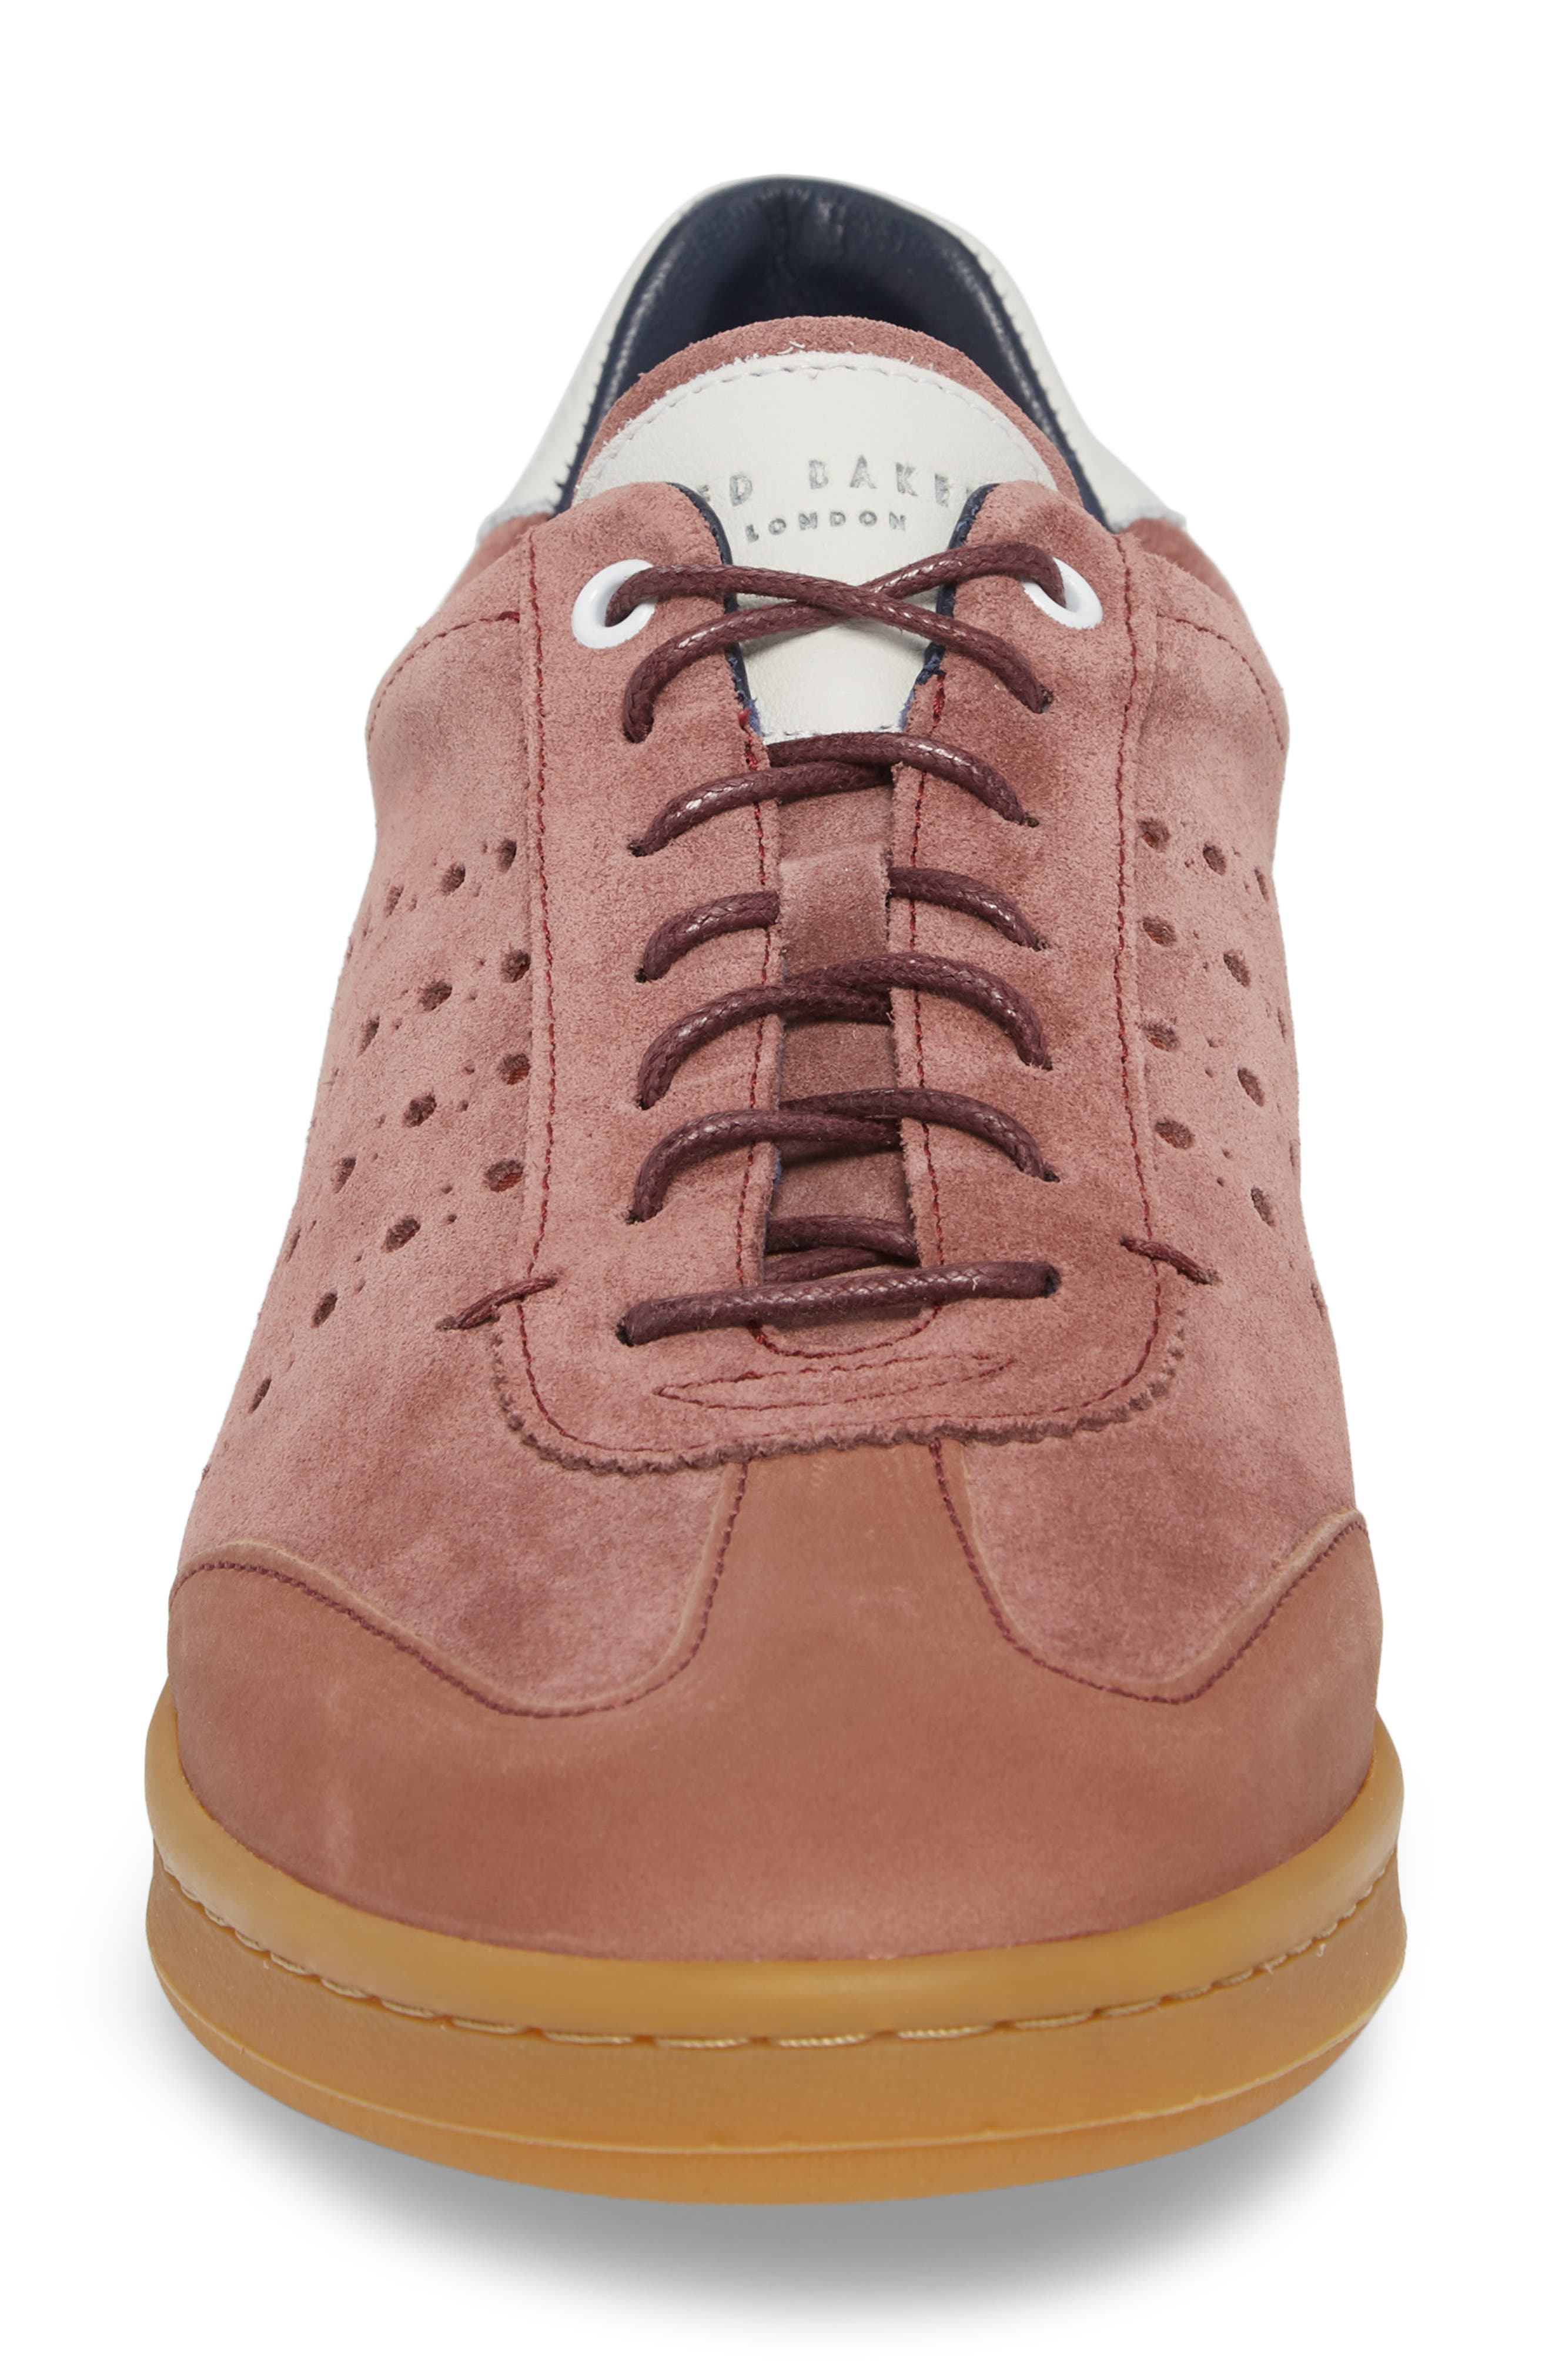 Orlees Low Top Sneaker,                             Alternate thumbnail 4, color,                             Pink Leather/ Suede